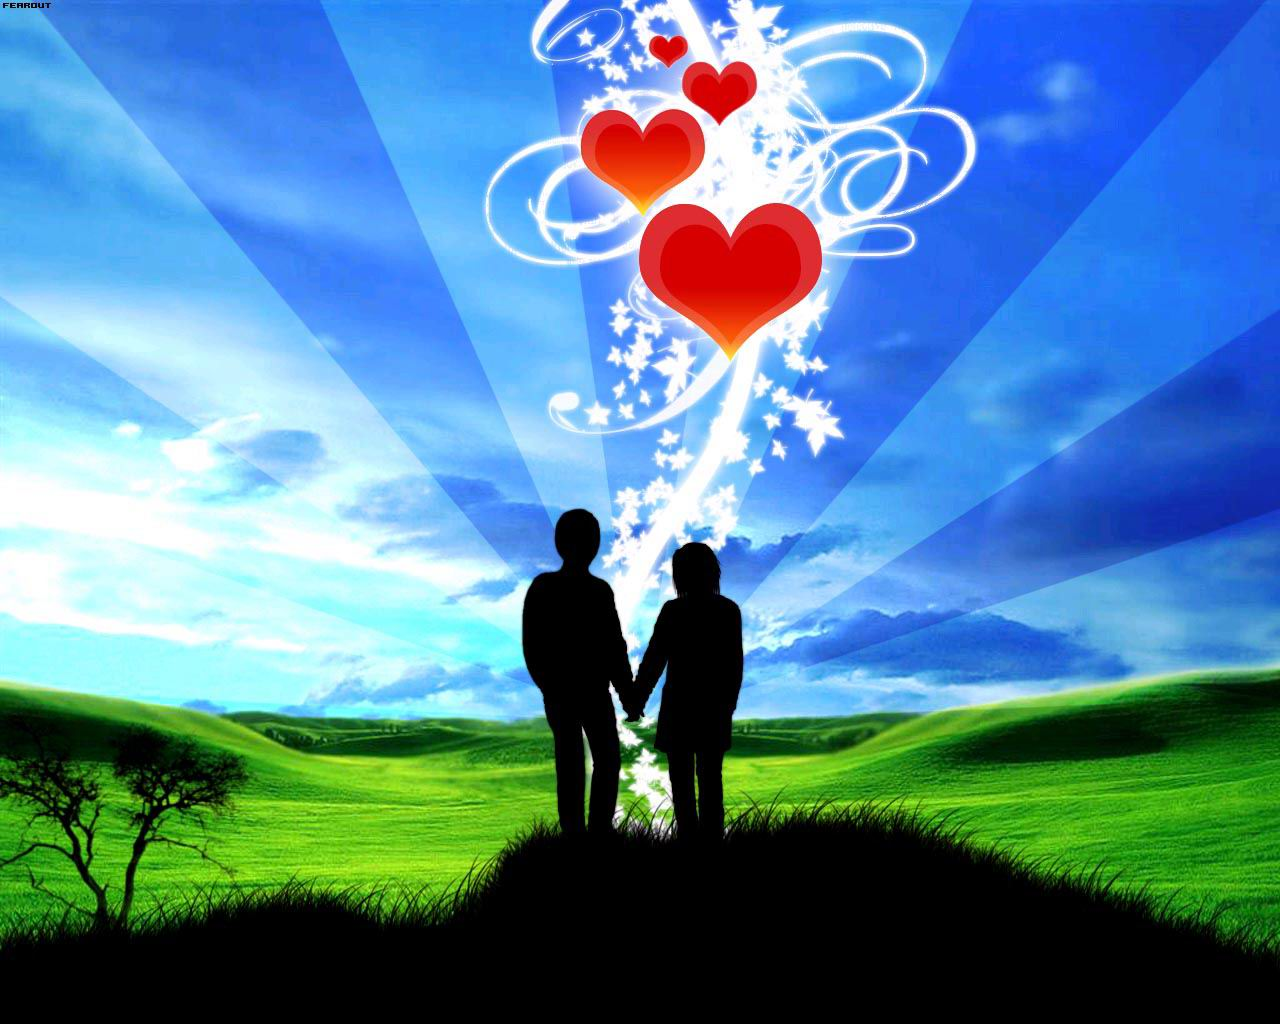 Hd Wallpaper Of Love Is Life : Love is Life: Love wallpapers new love wallpapers latest love wallpapers 2012 love hd ...